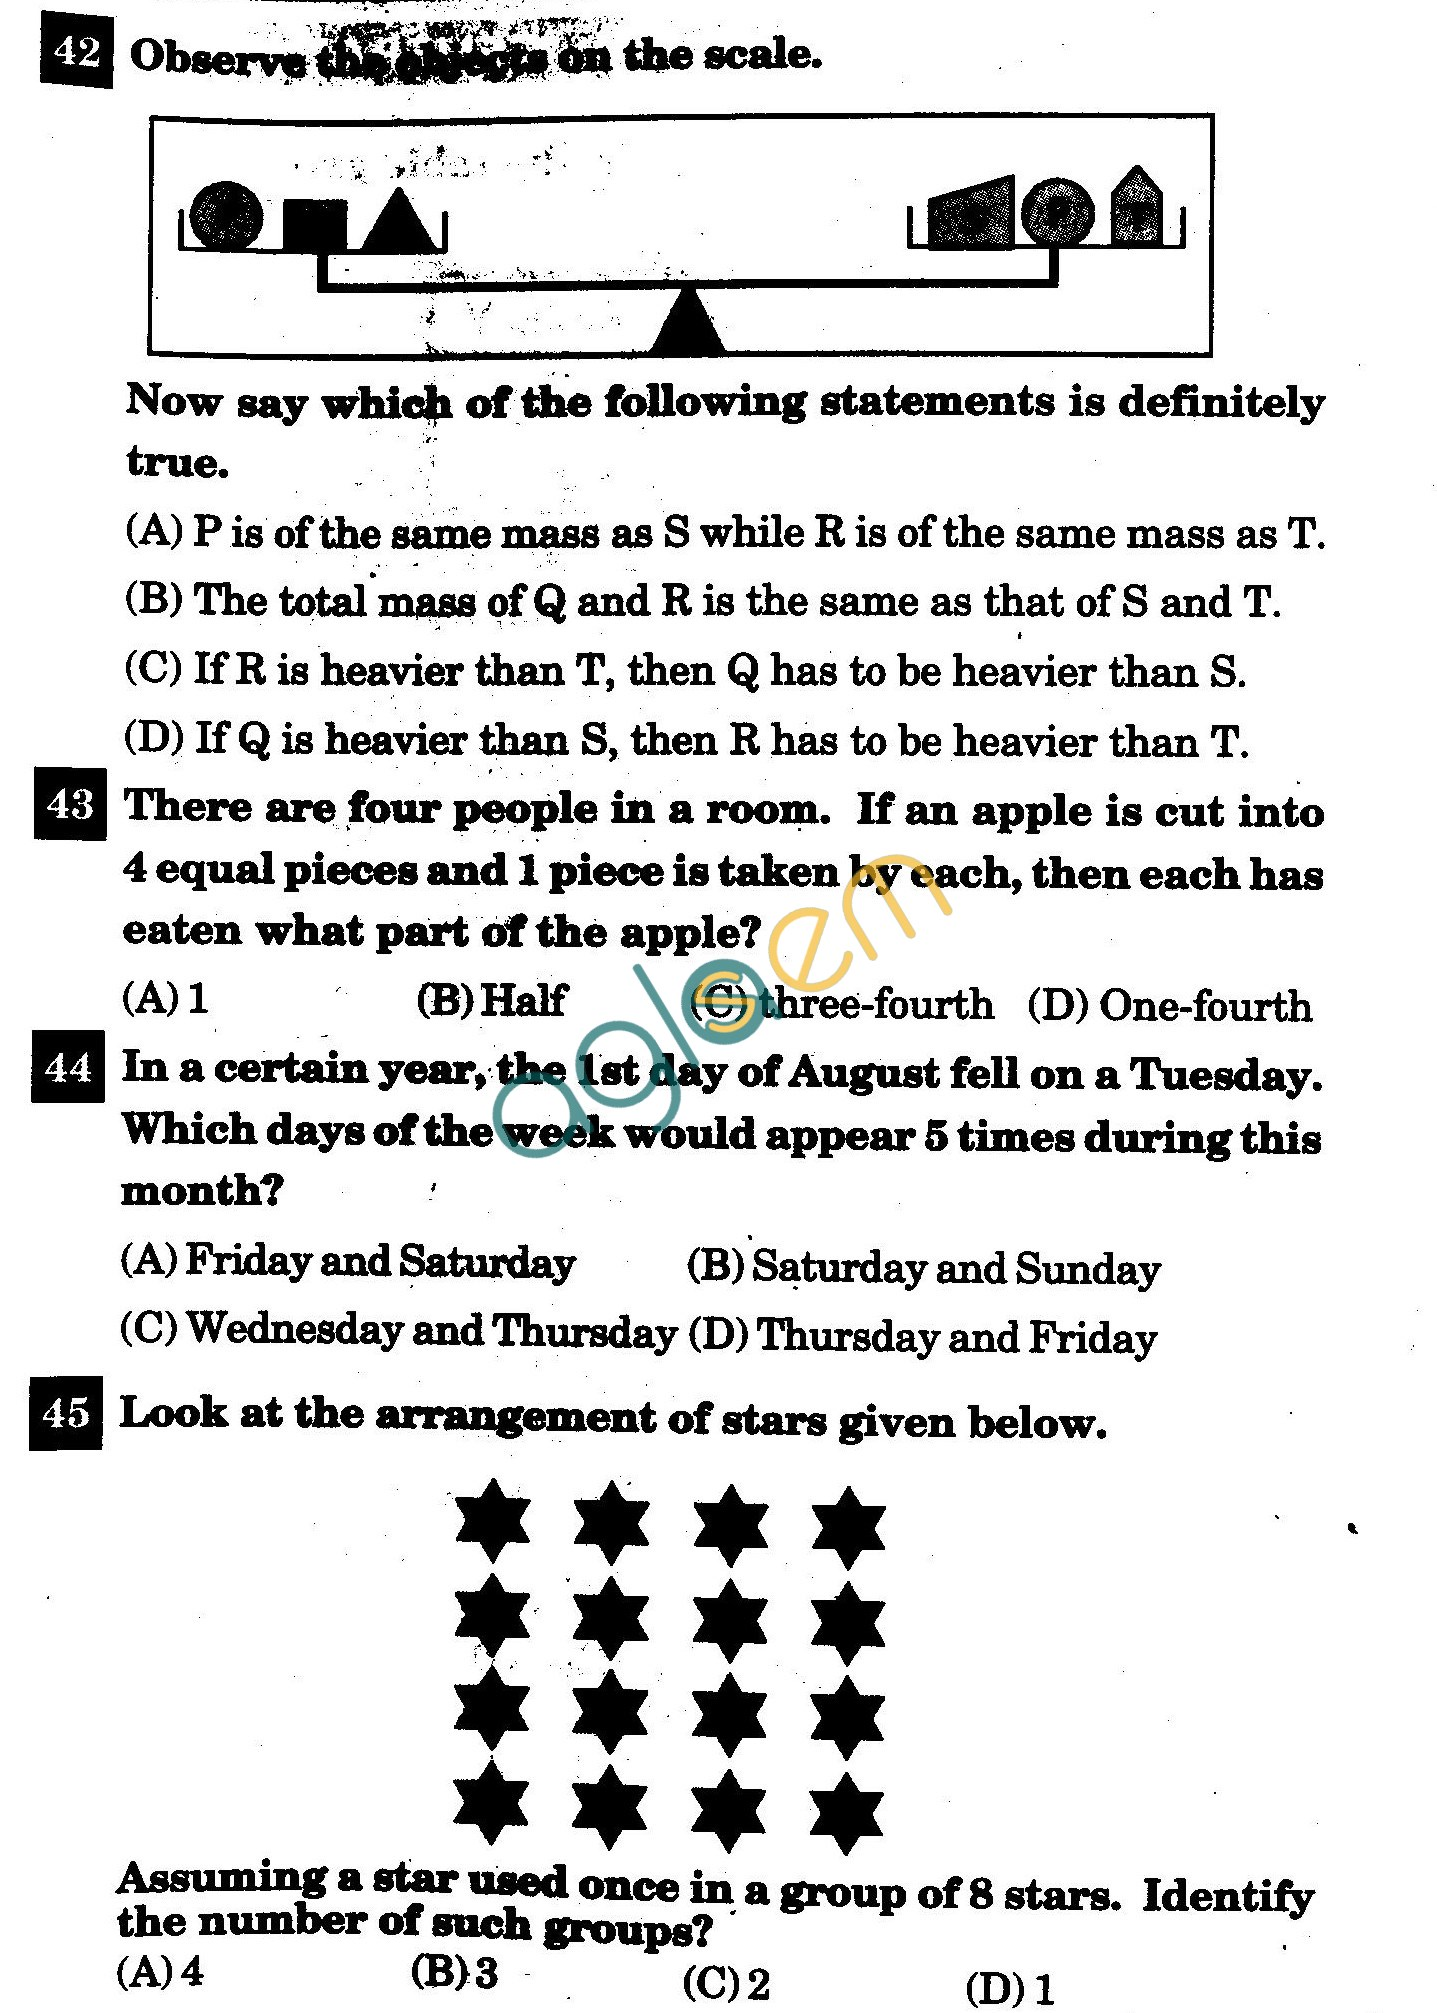 NSTSE 2011: Class IV Question Paper with Answers - Mathematics